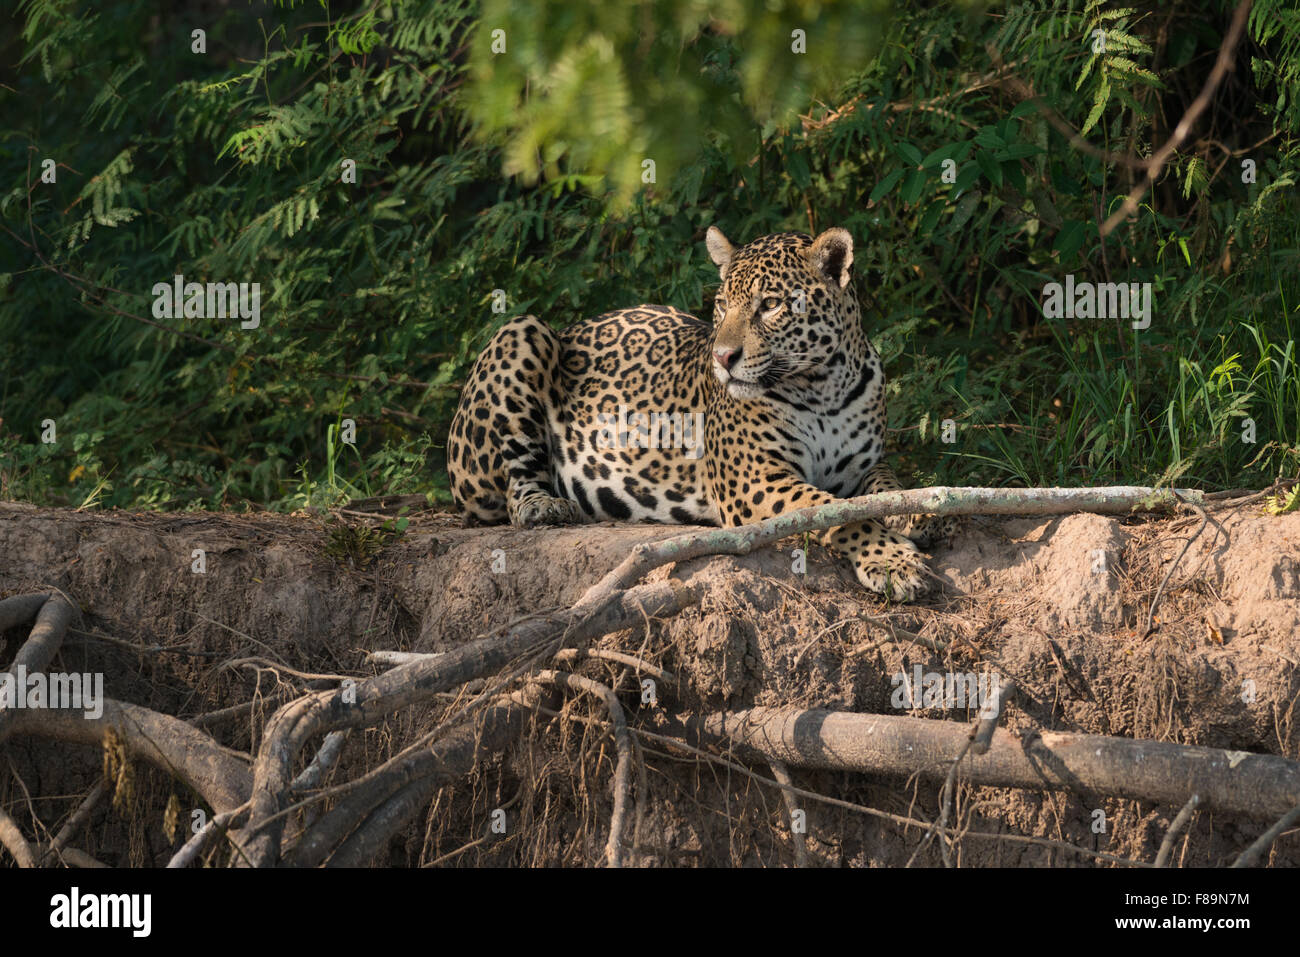 a-jaguar-resting-at-a-river-bank-in-the-